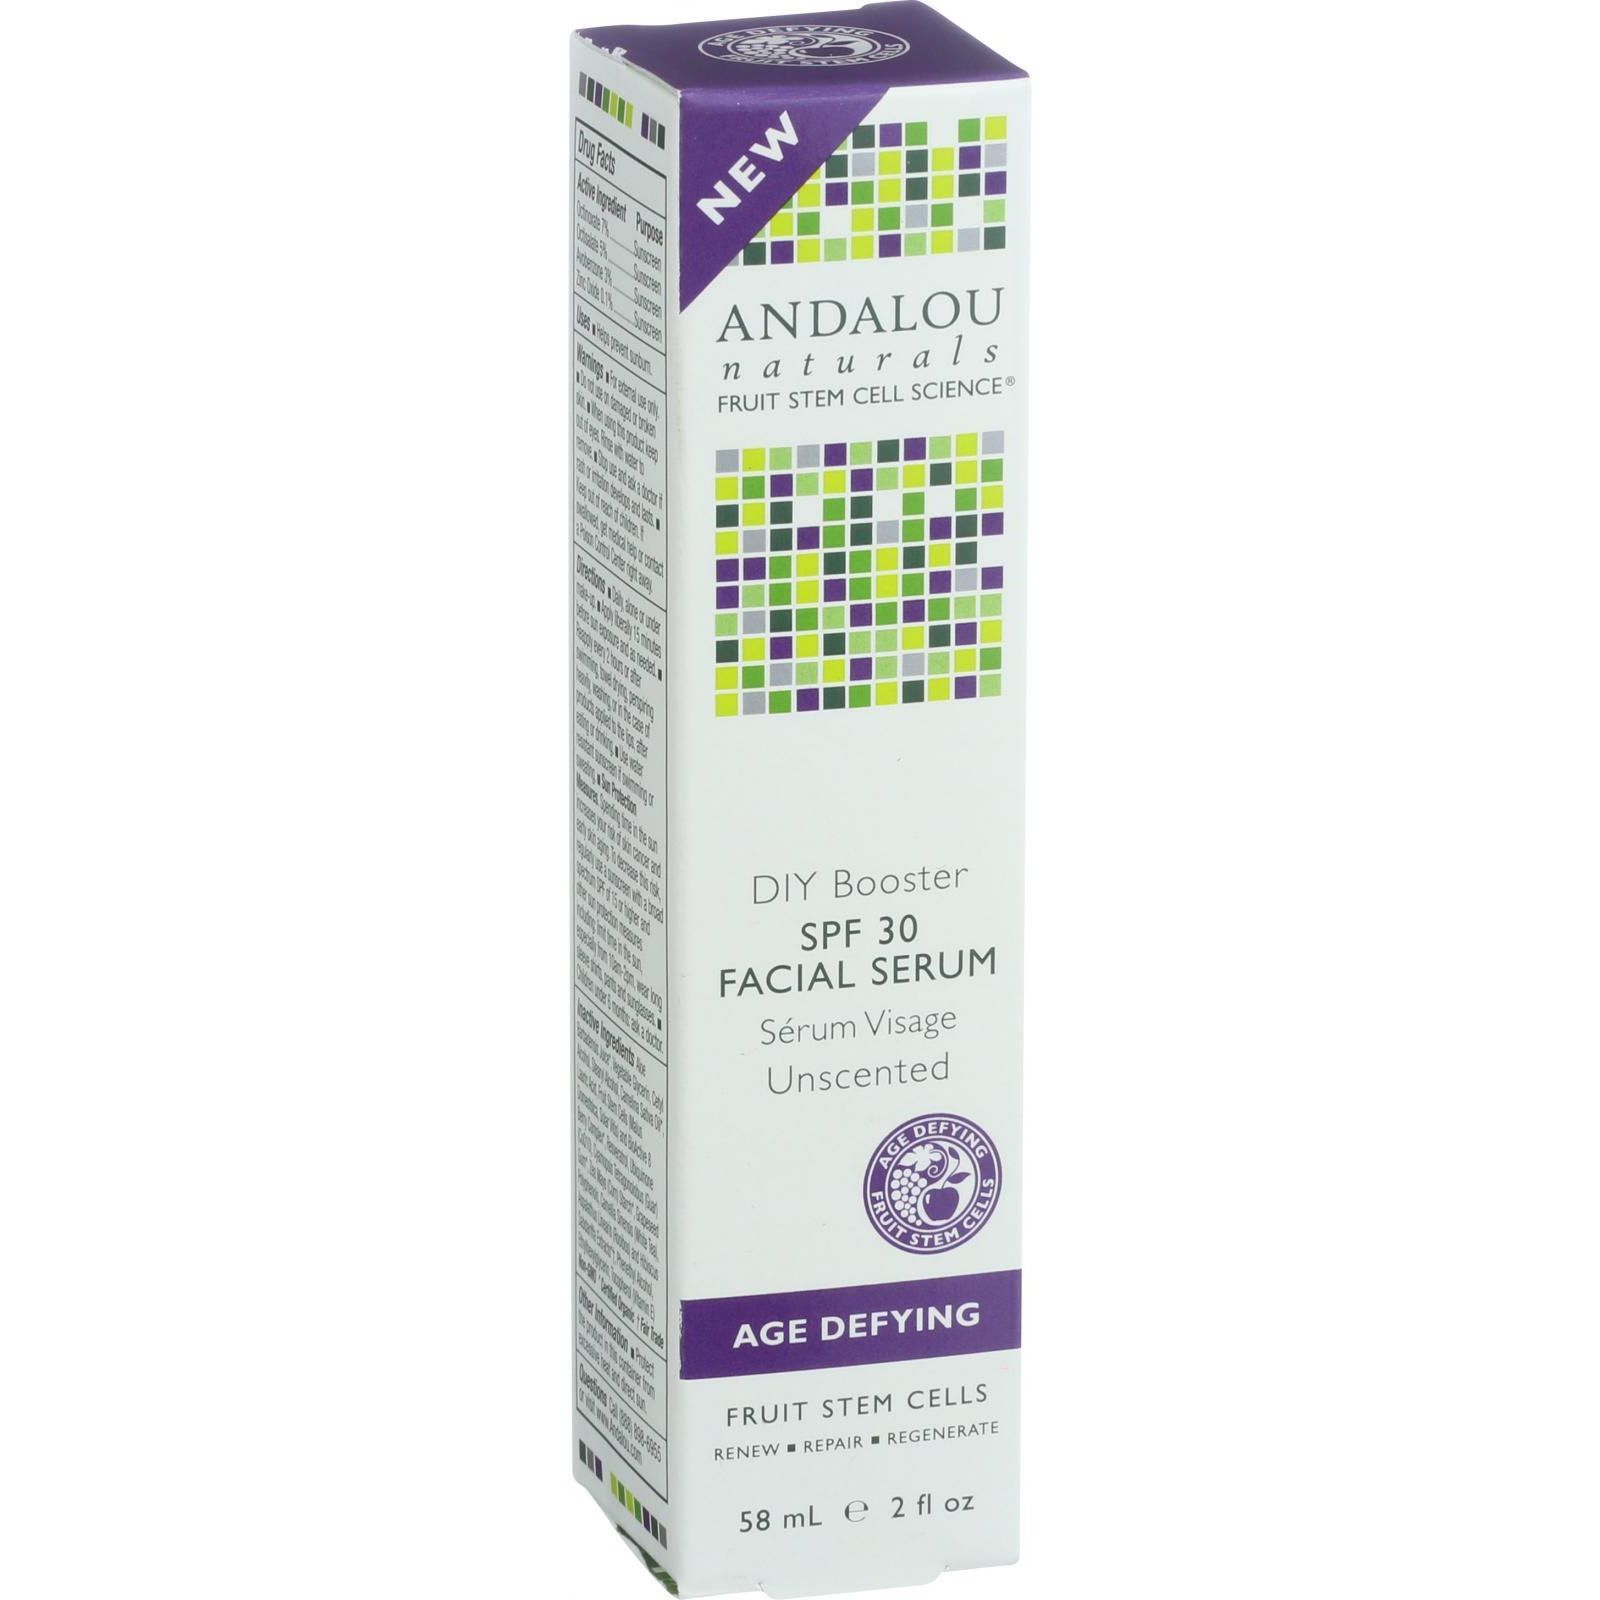 Andalou Naturals Facial Serum  DIY Booster SPF 30  2 oz